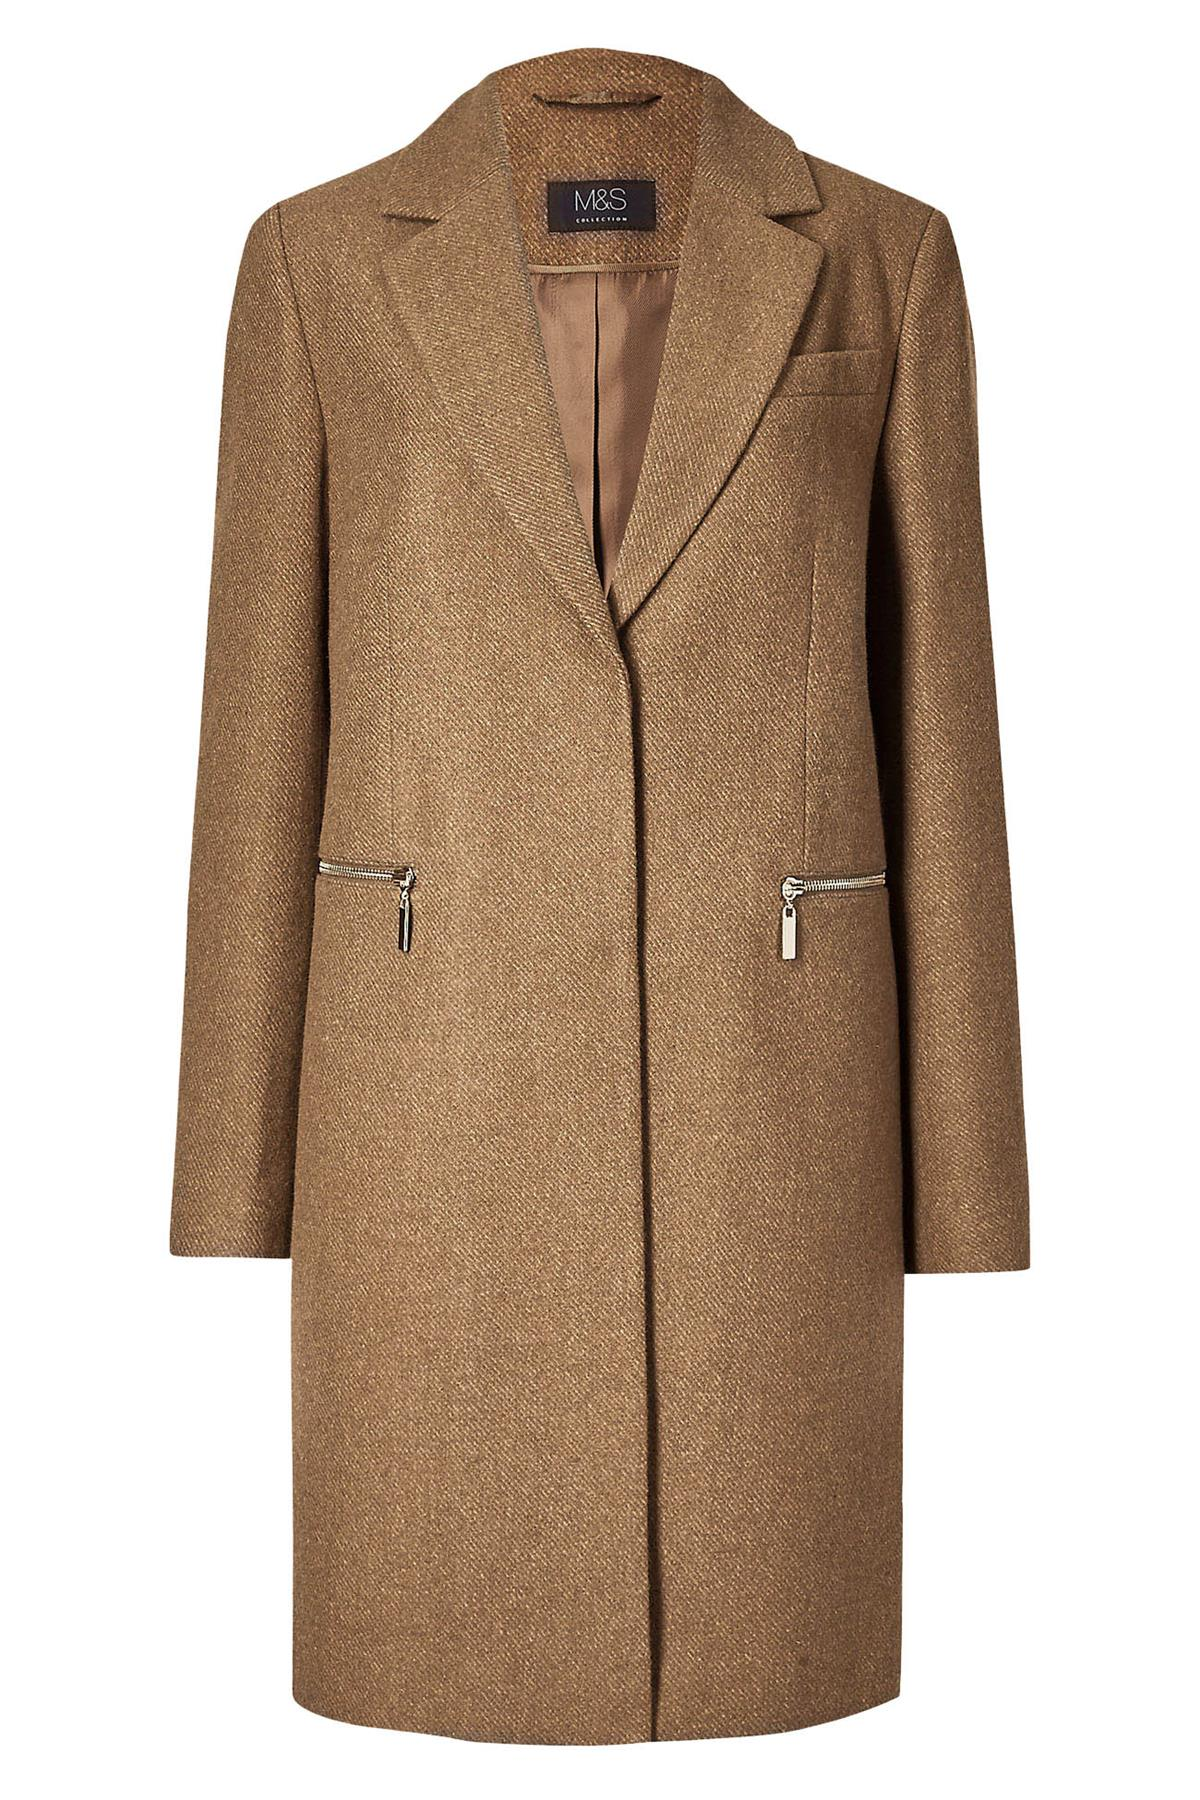 Marks-and-Spencer-Ladies-Size-20-M-amp-S-Pink-Wool-Blend-Coat-Womens thumbnail 9